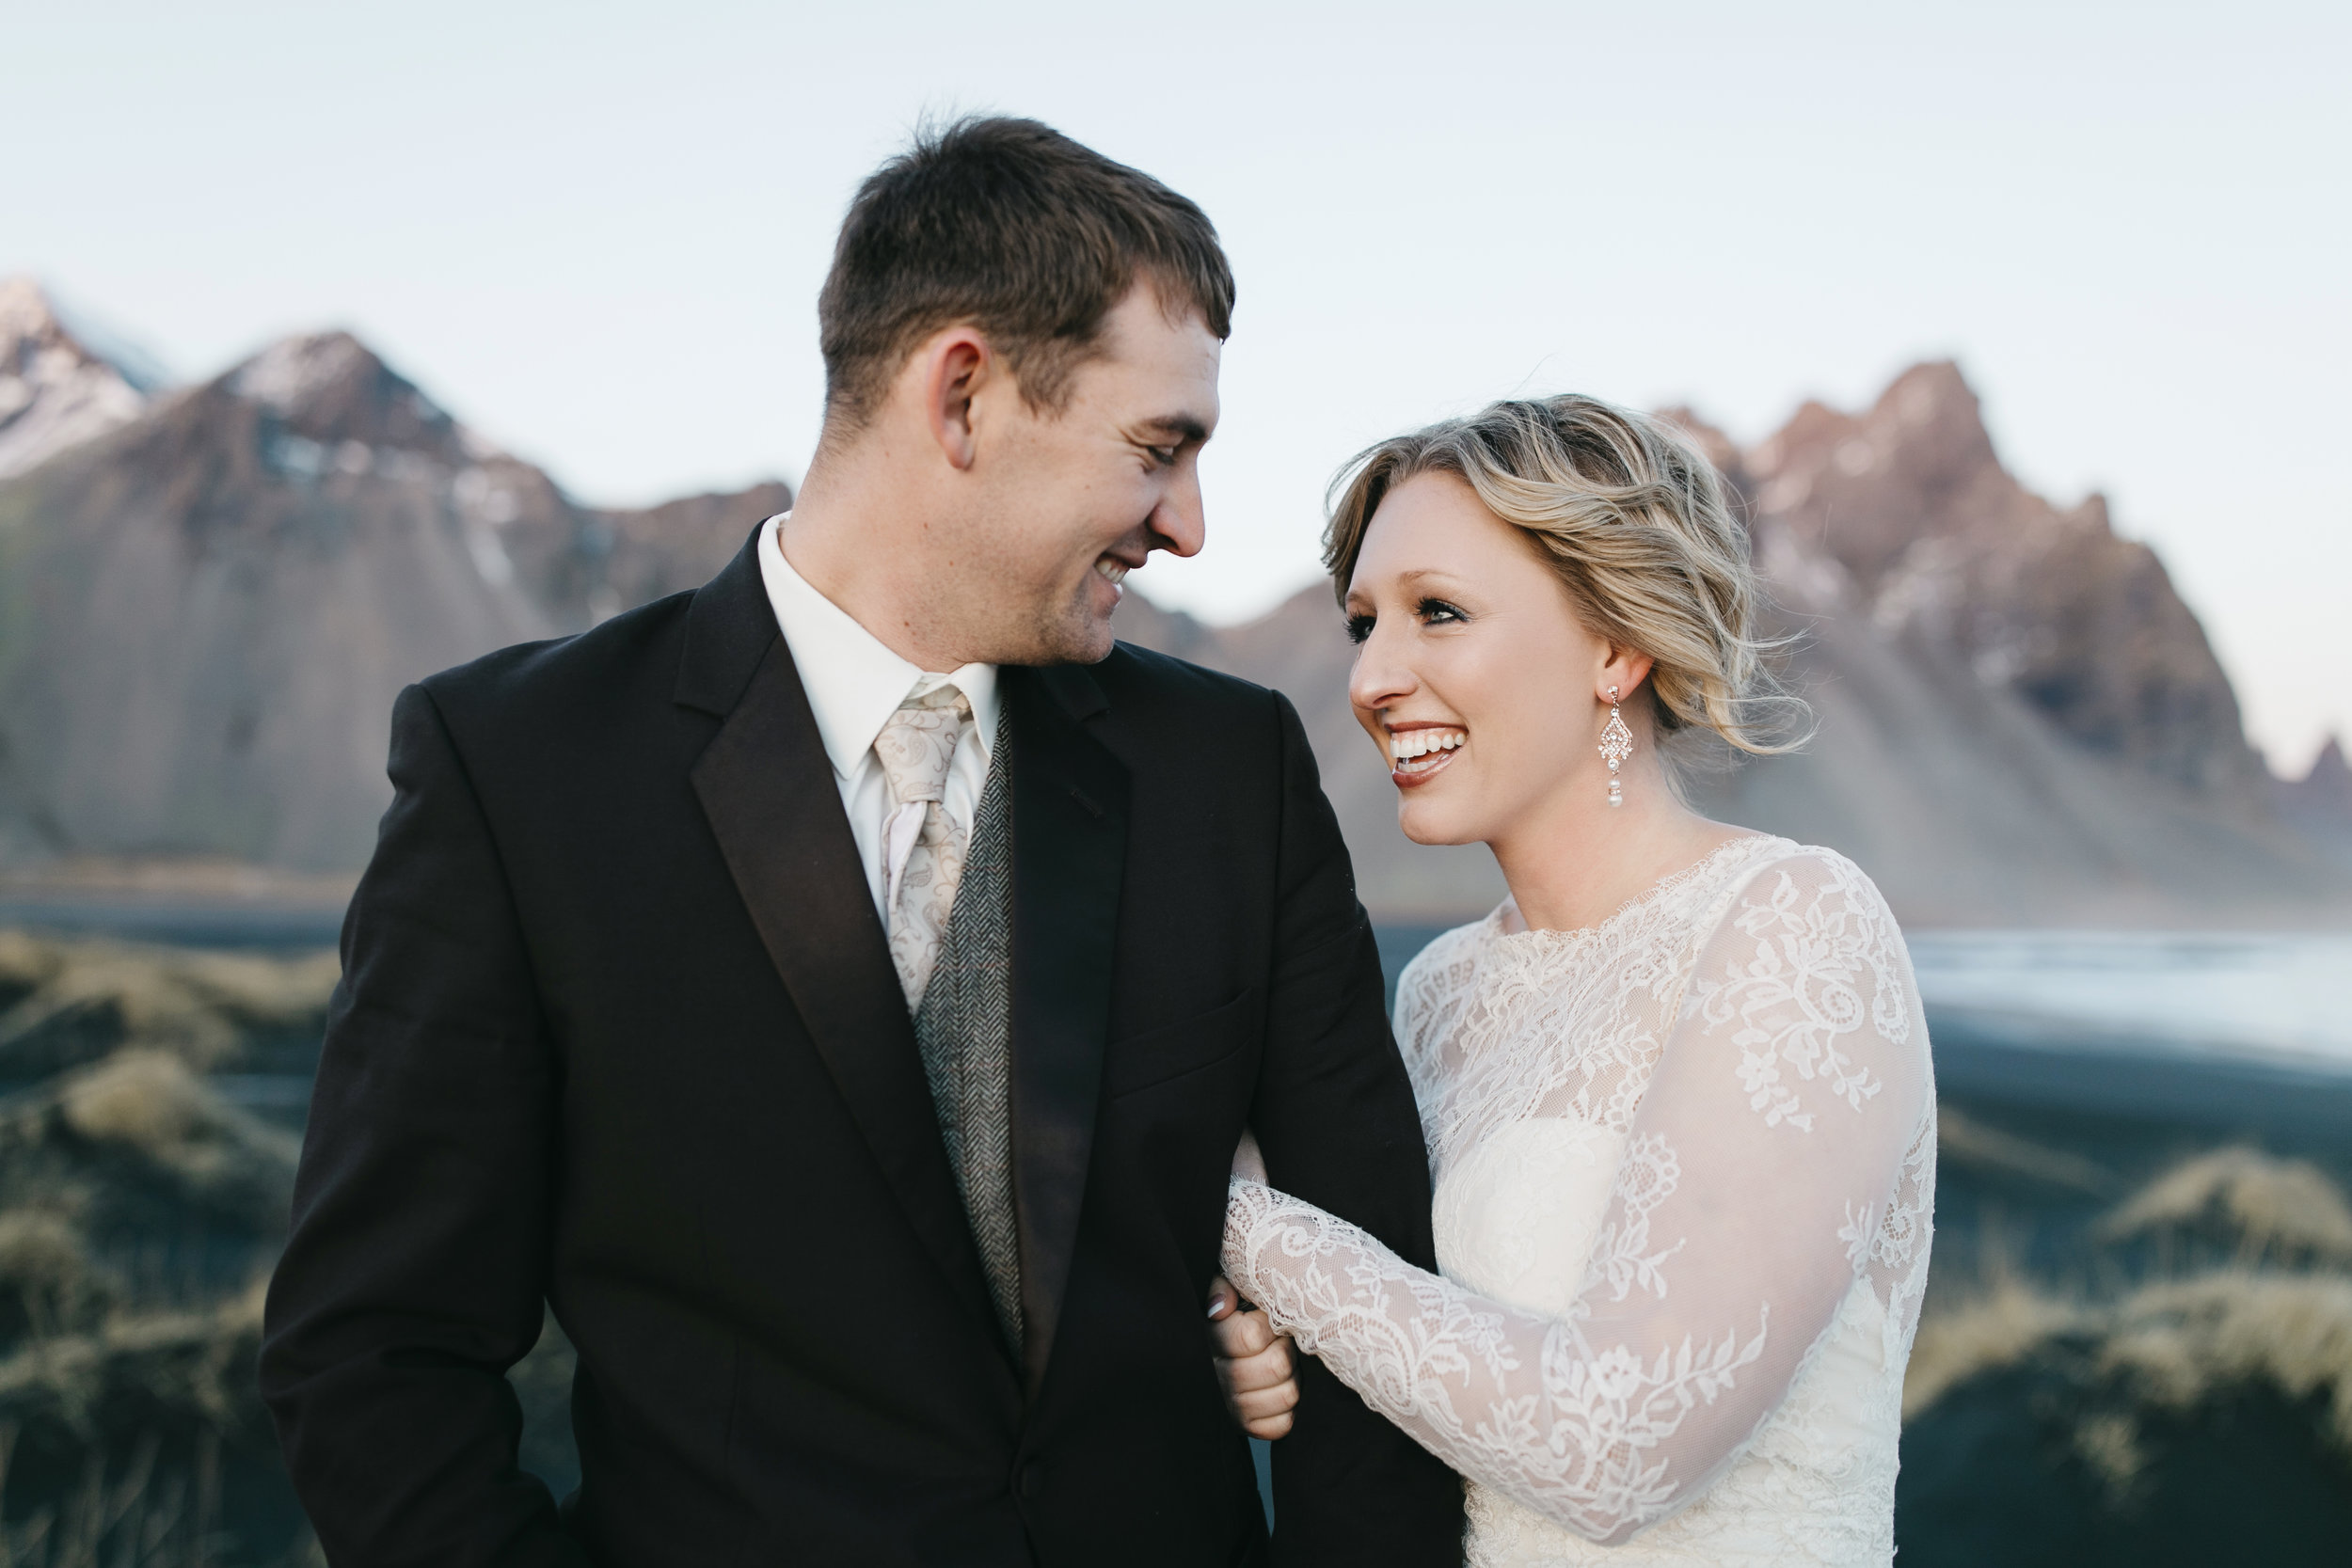 Bride and groom laugh together after their Iceland Elopement with adventure wedding photographers Colby and Jess.